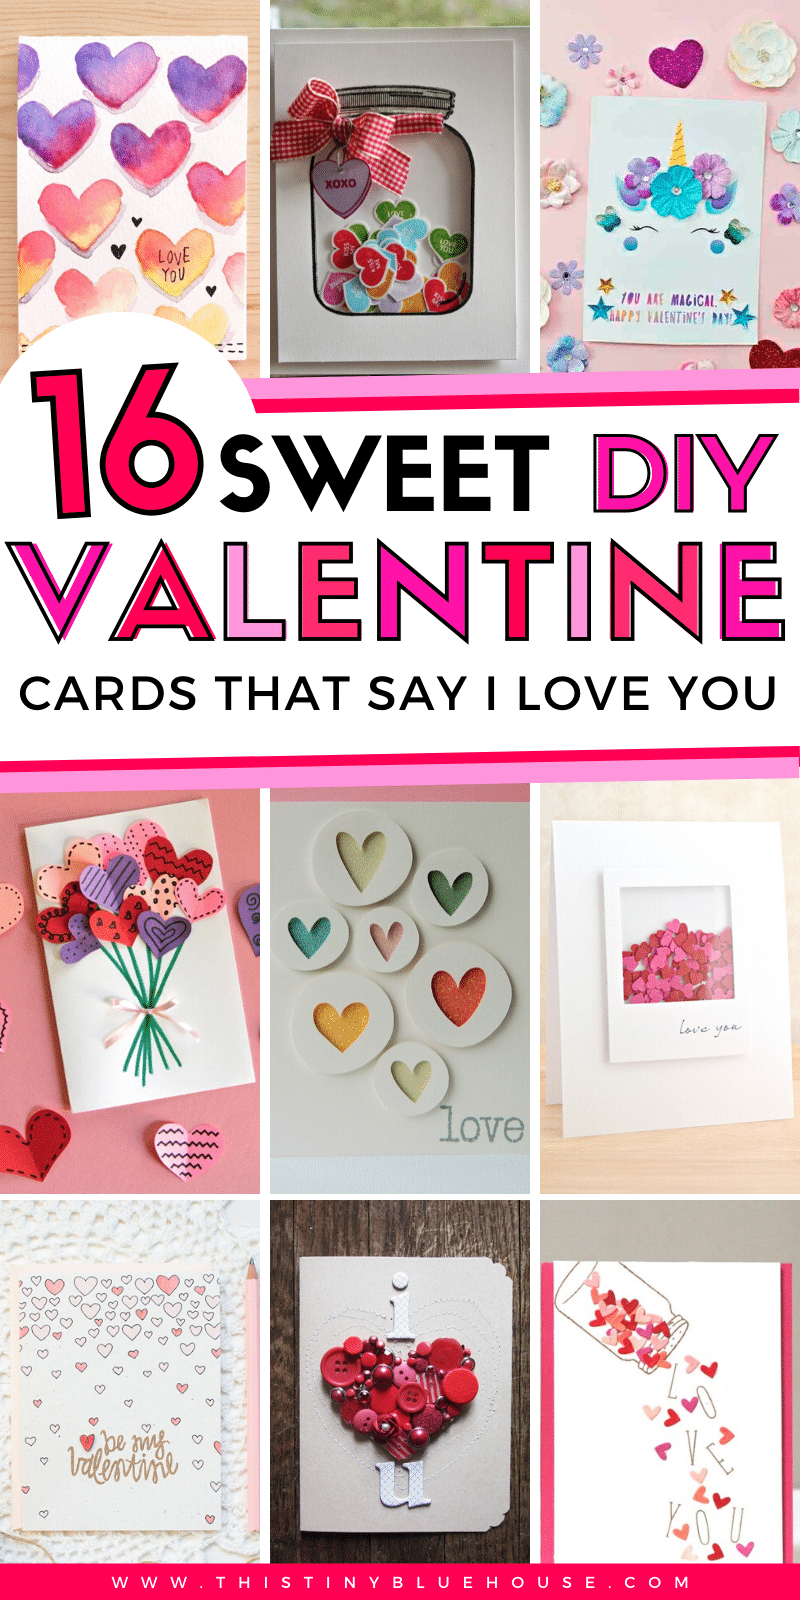 16 Beyond Adorable Diy Valentine S Day Card Ideas This Tiny Blue House